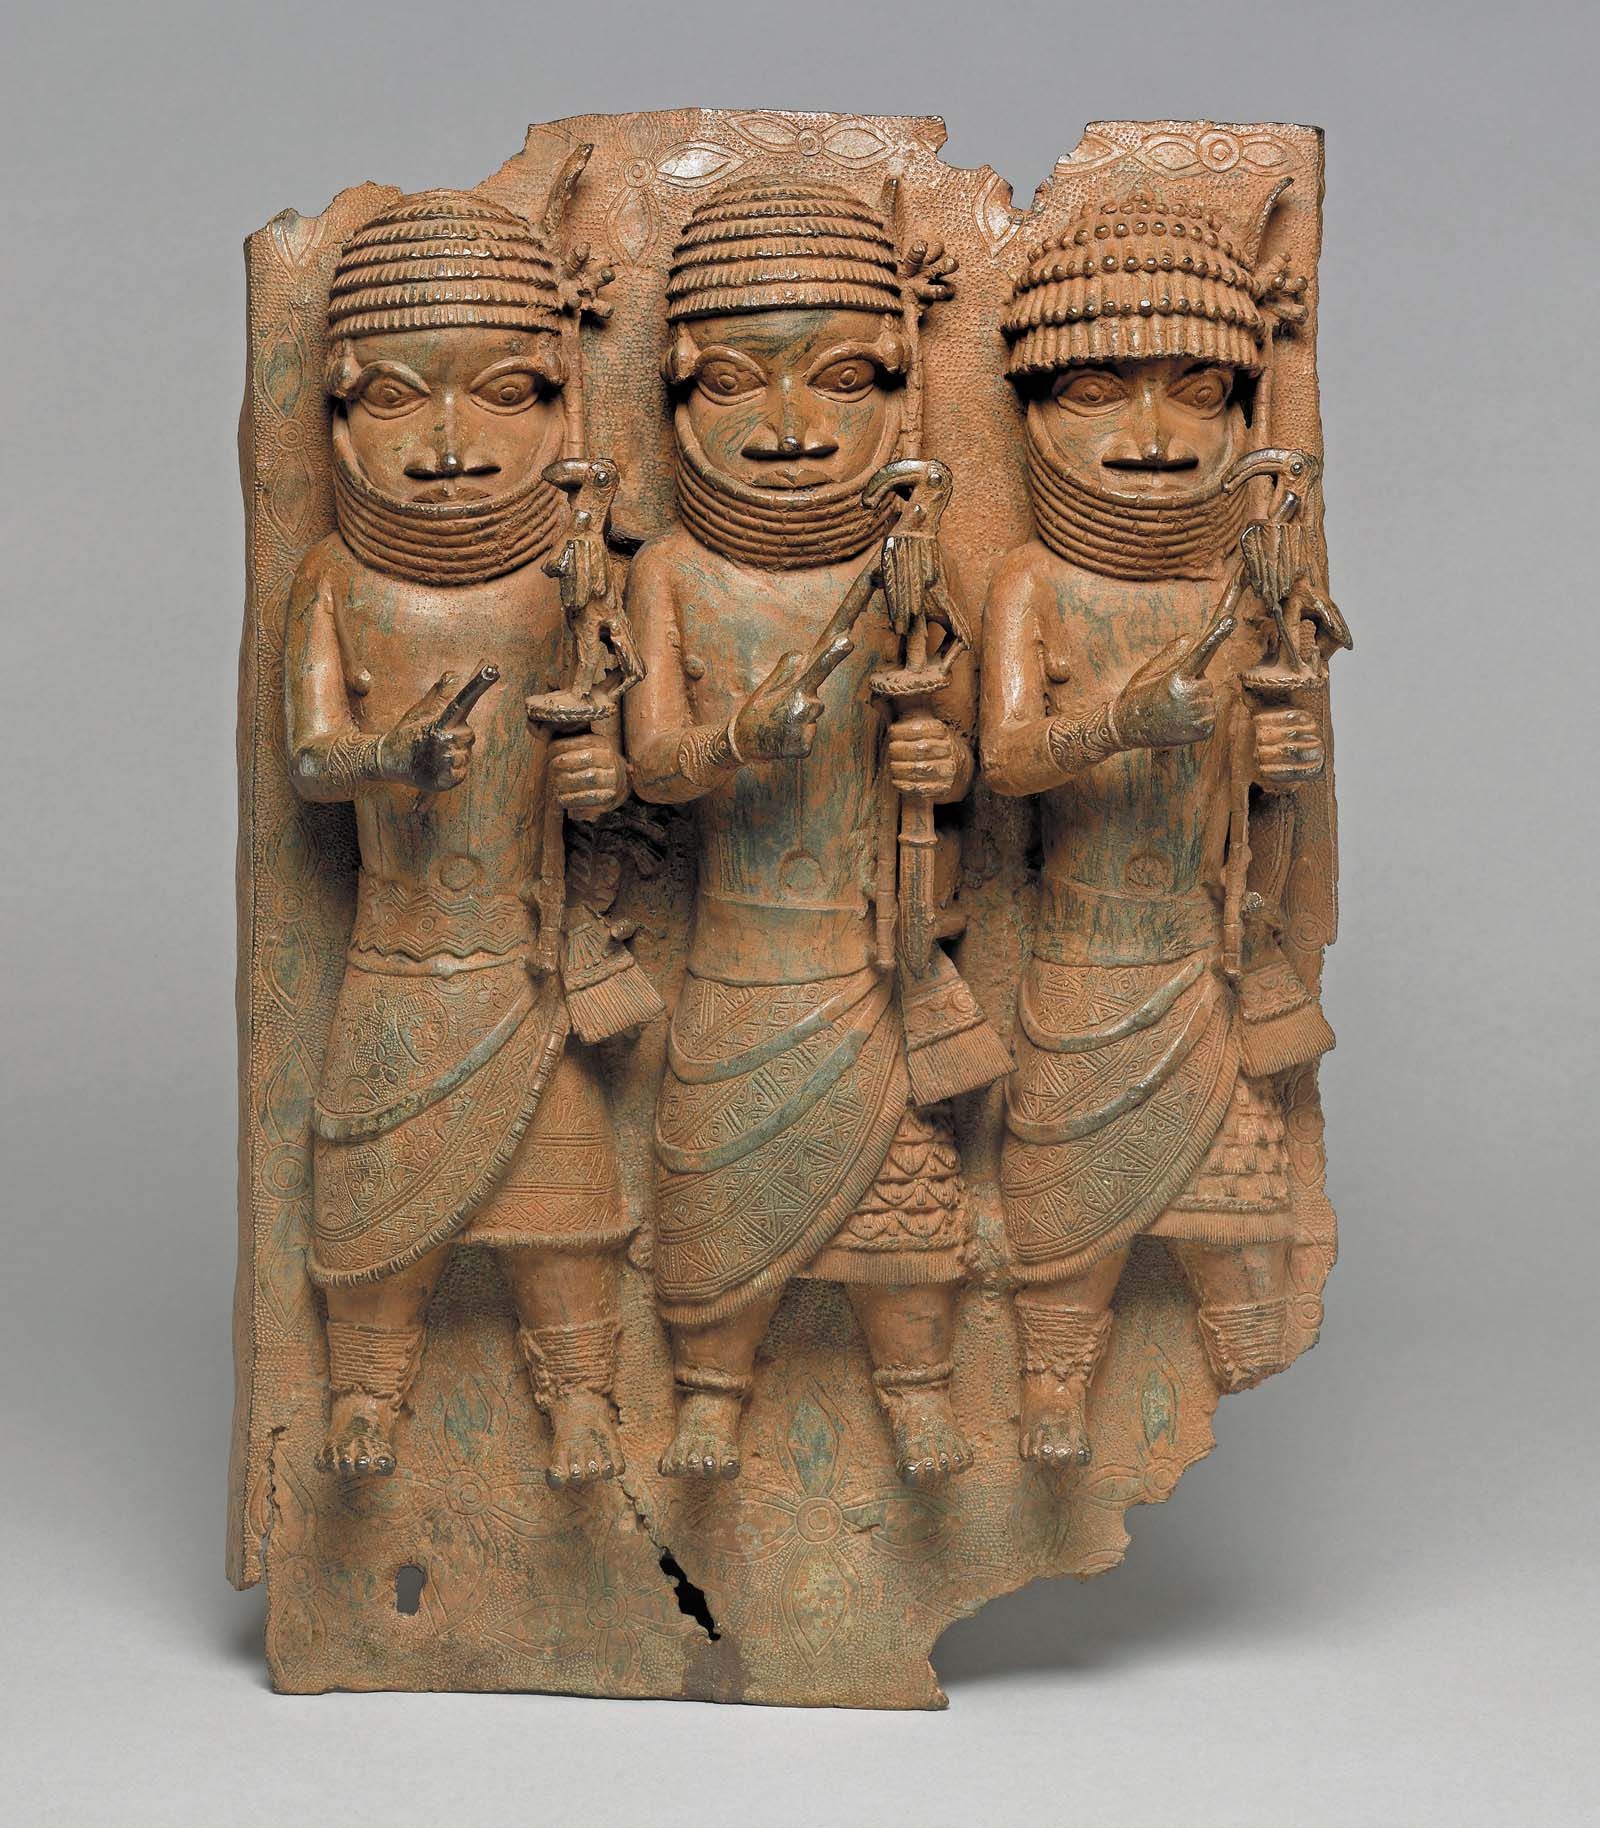 a relief sculpture in bronze showing three ceremonial figures with African style warrior costume